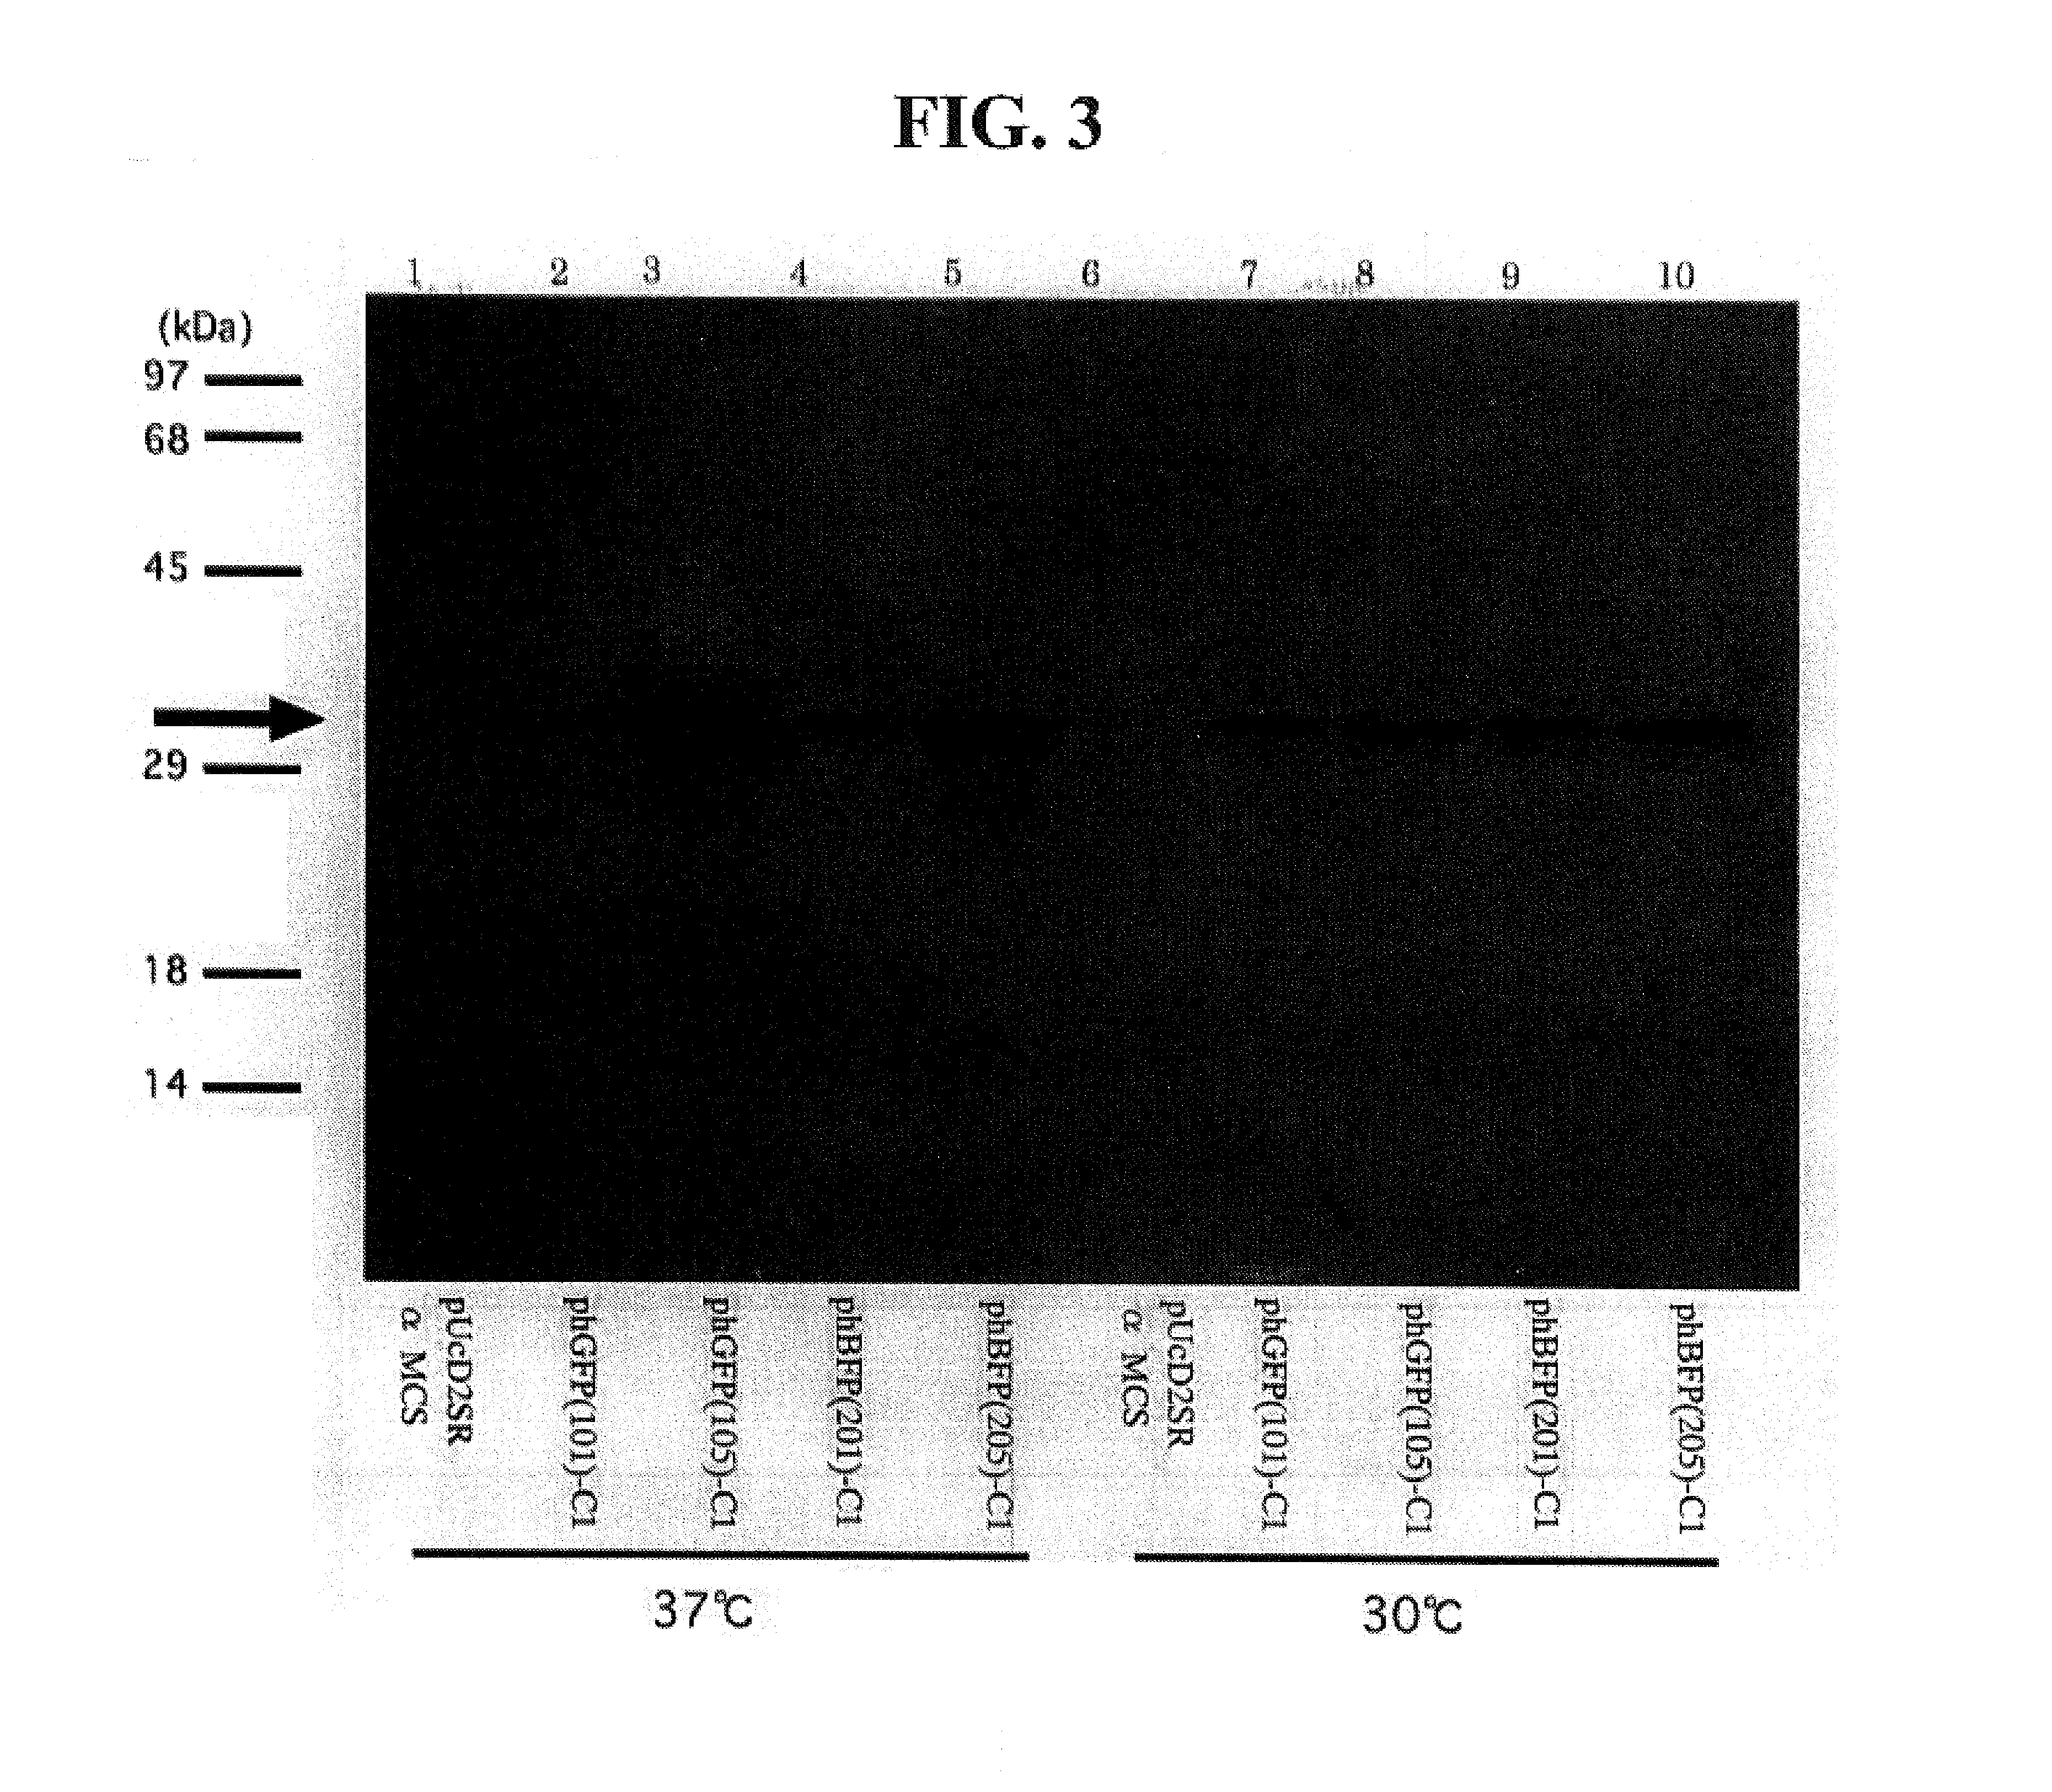 expression and characterisation of green fluorescent protein mutant The subcellular expression patterns and fluorescence intensities of  green  fluorescent protein (gfp) is a 238 amino acid peptide isolated from the  since  gfp introduction, a variety of spectral and codon optimized mutants have  of  aspergillus nidulans: molecular characterization of aspb and in vivo.